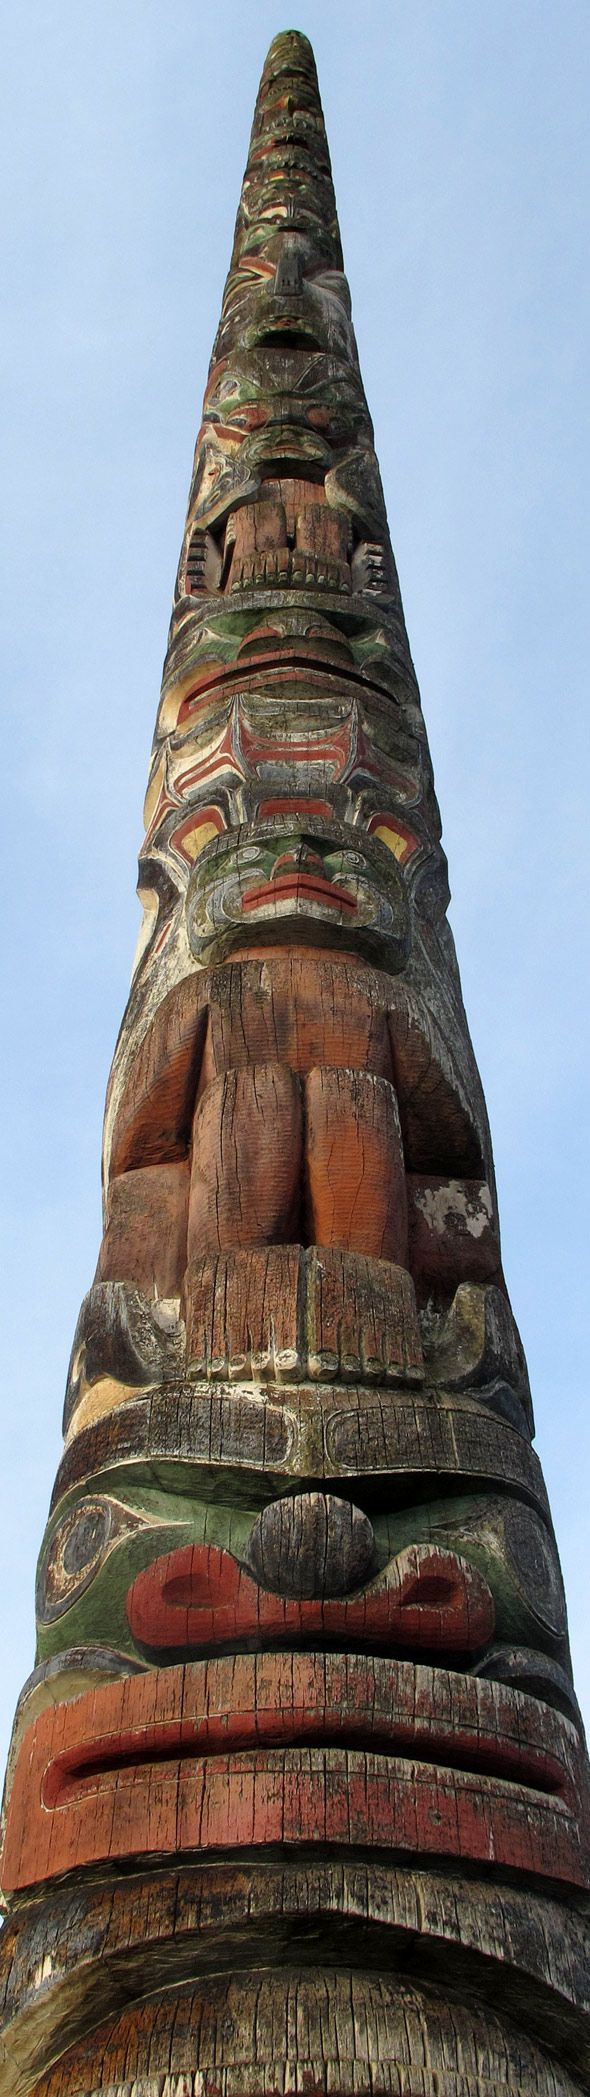 Totem pole in Vancouver, British Columbia - Totem poles are distinctive to First Nations cultures on the Pacific coast (i.e. not all First Nations groups have them - surprise, surprise!), so they can be seen all over British Columbia as a part of provincial identity.